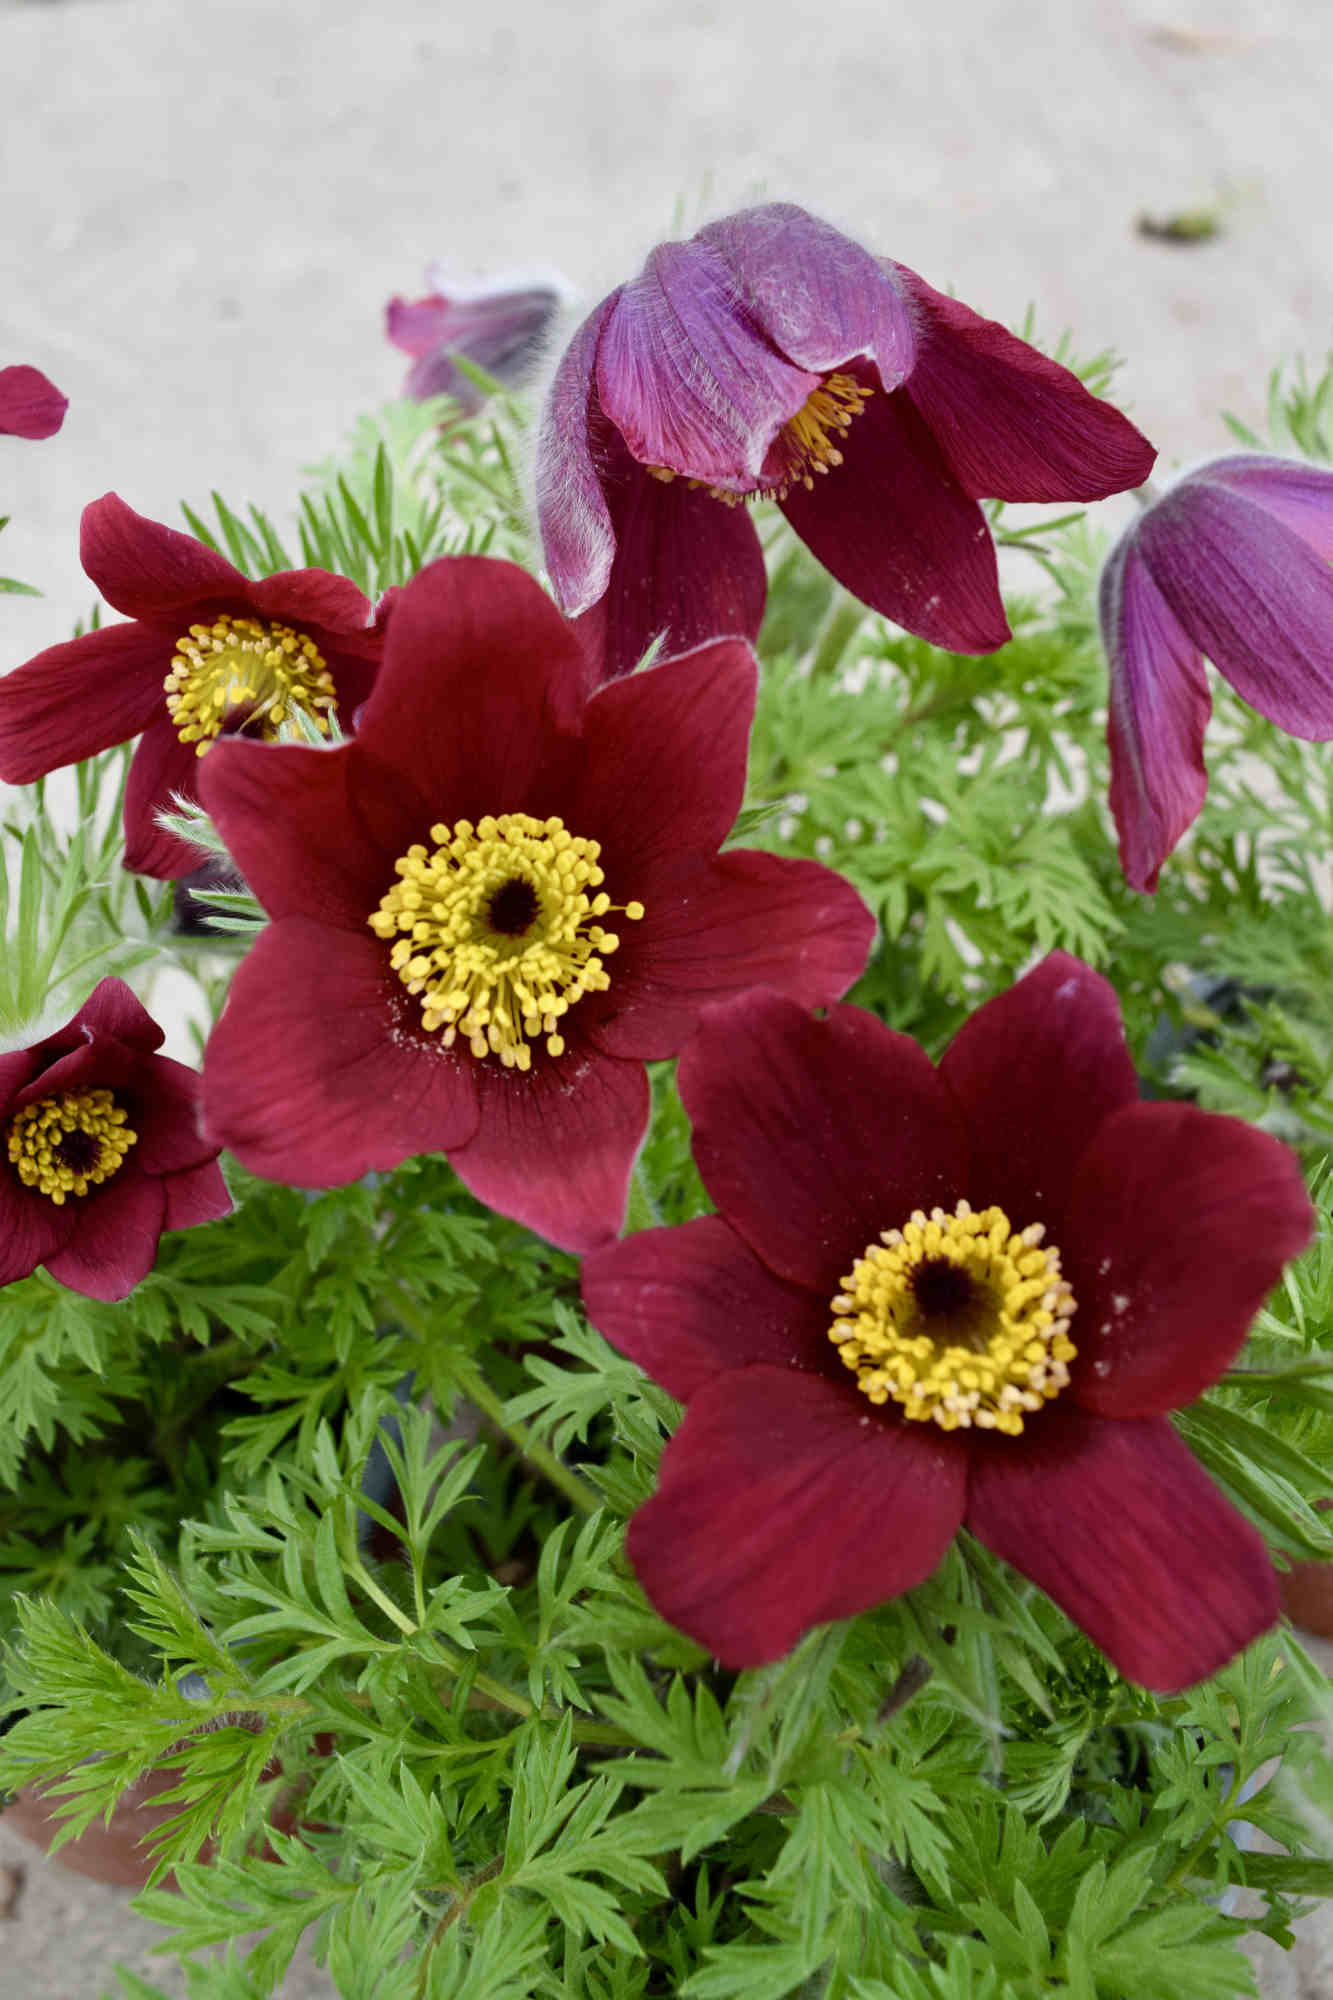 Küchenschelle 'Pinwheel Dark Red Shades' - Pulsatilla vulgaris 'Pinwheel Dark Red Shades'